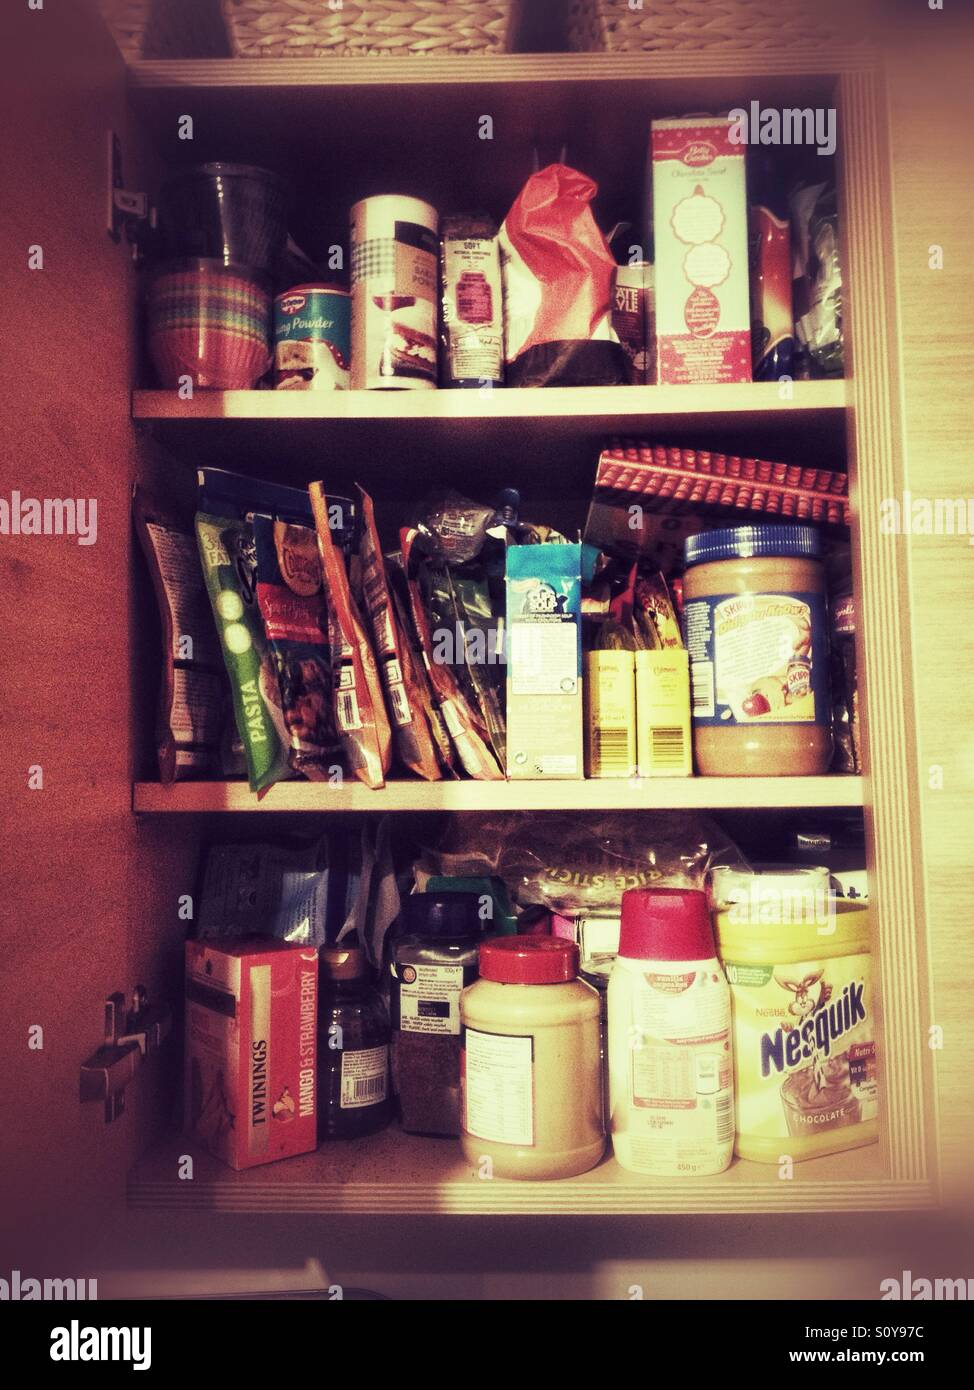 A kitchen cupboard full of food. Stock Photo